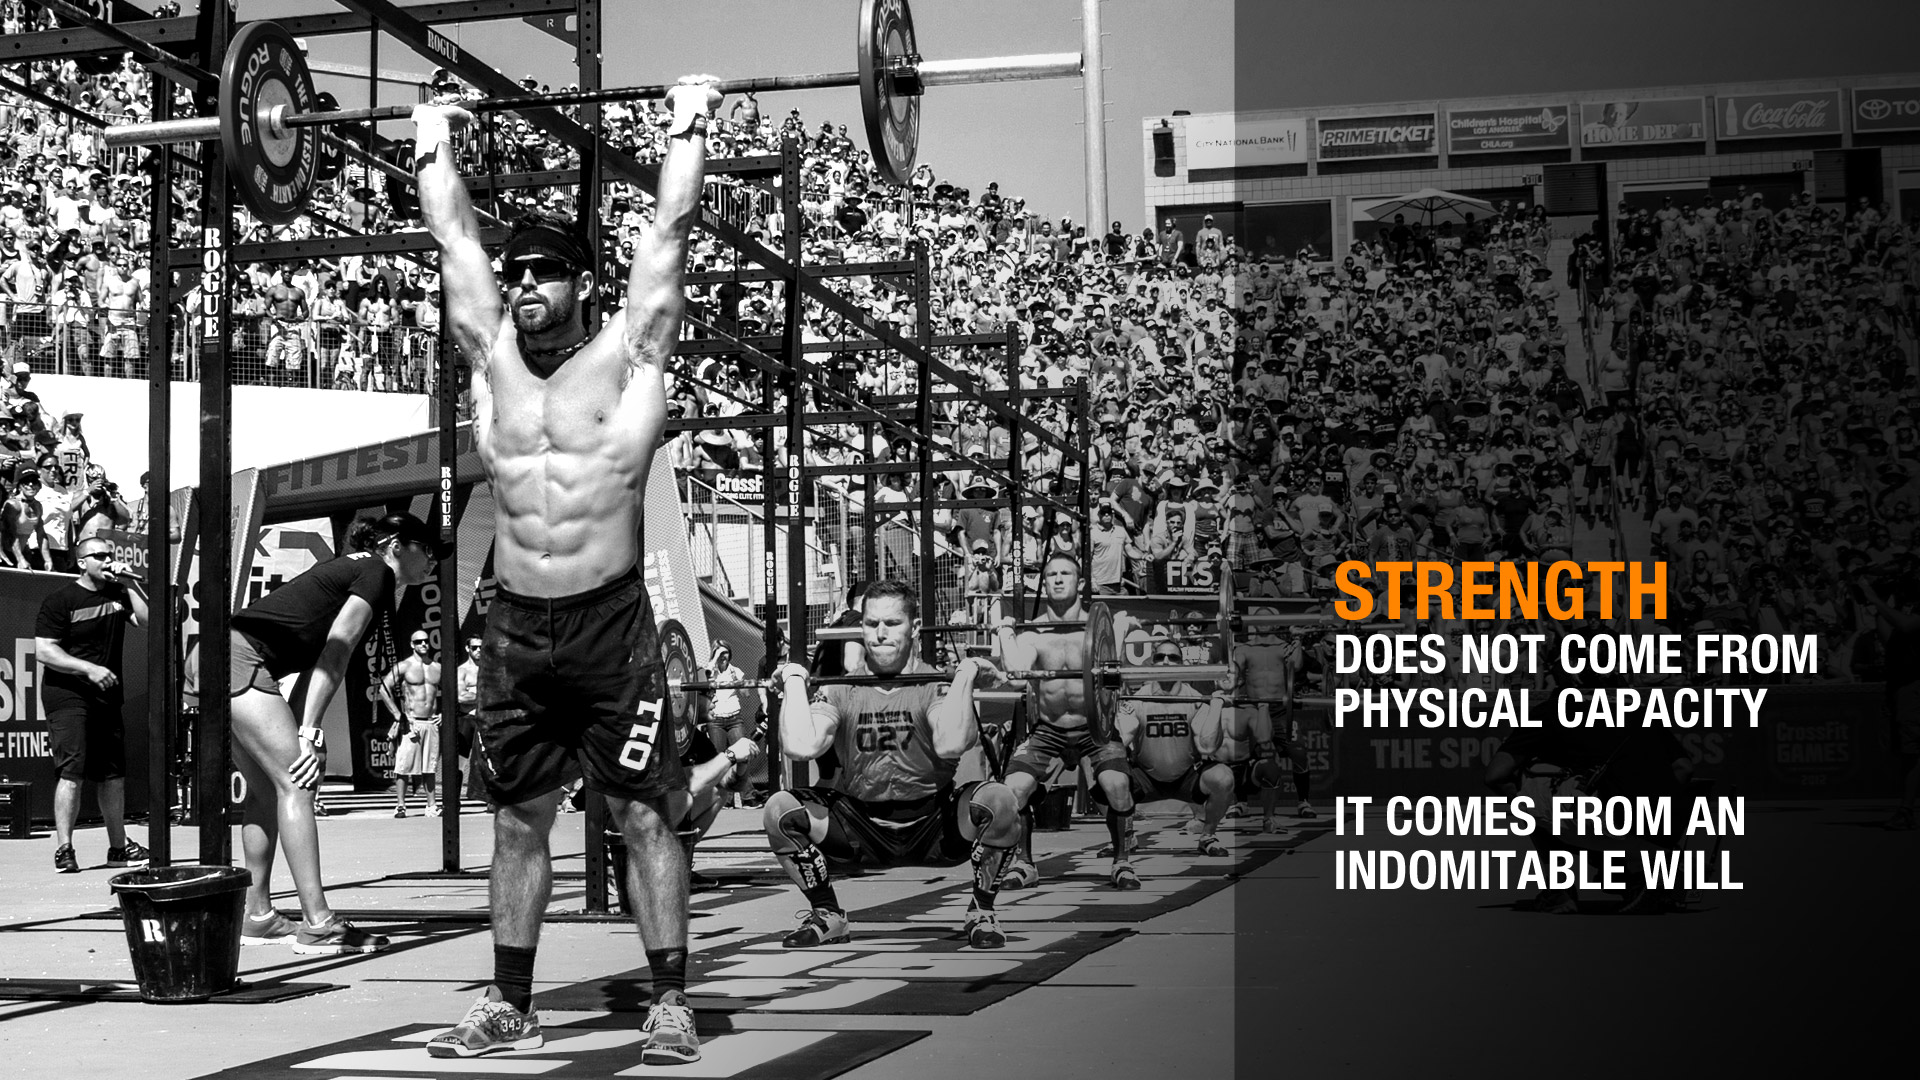 Motivational Wallpaper Strength The Fitness Wire